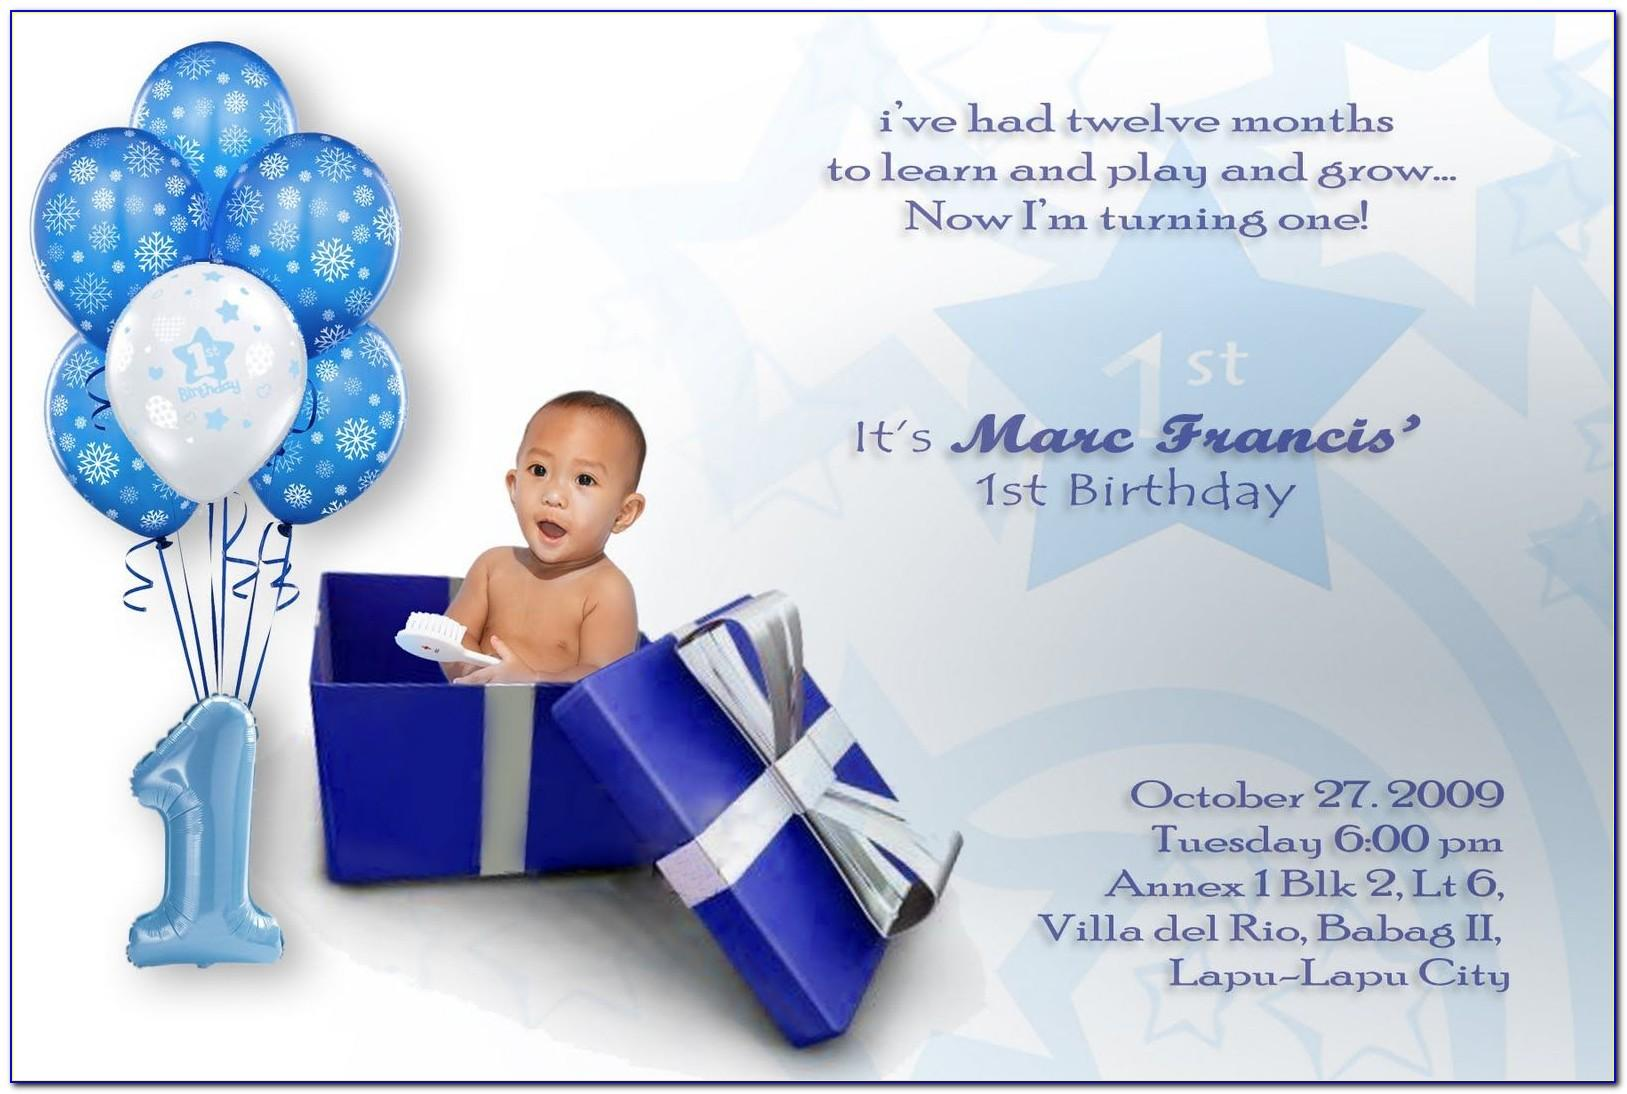 1st Birthday Invitation Card For Boy